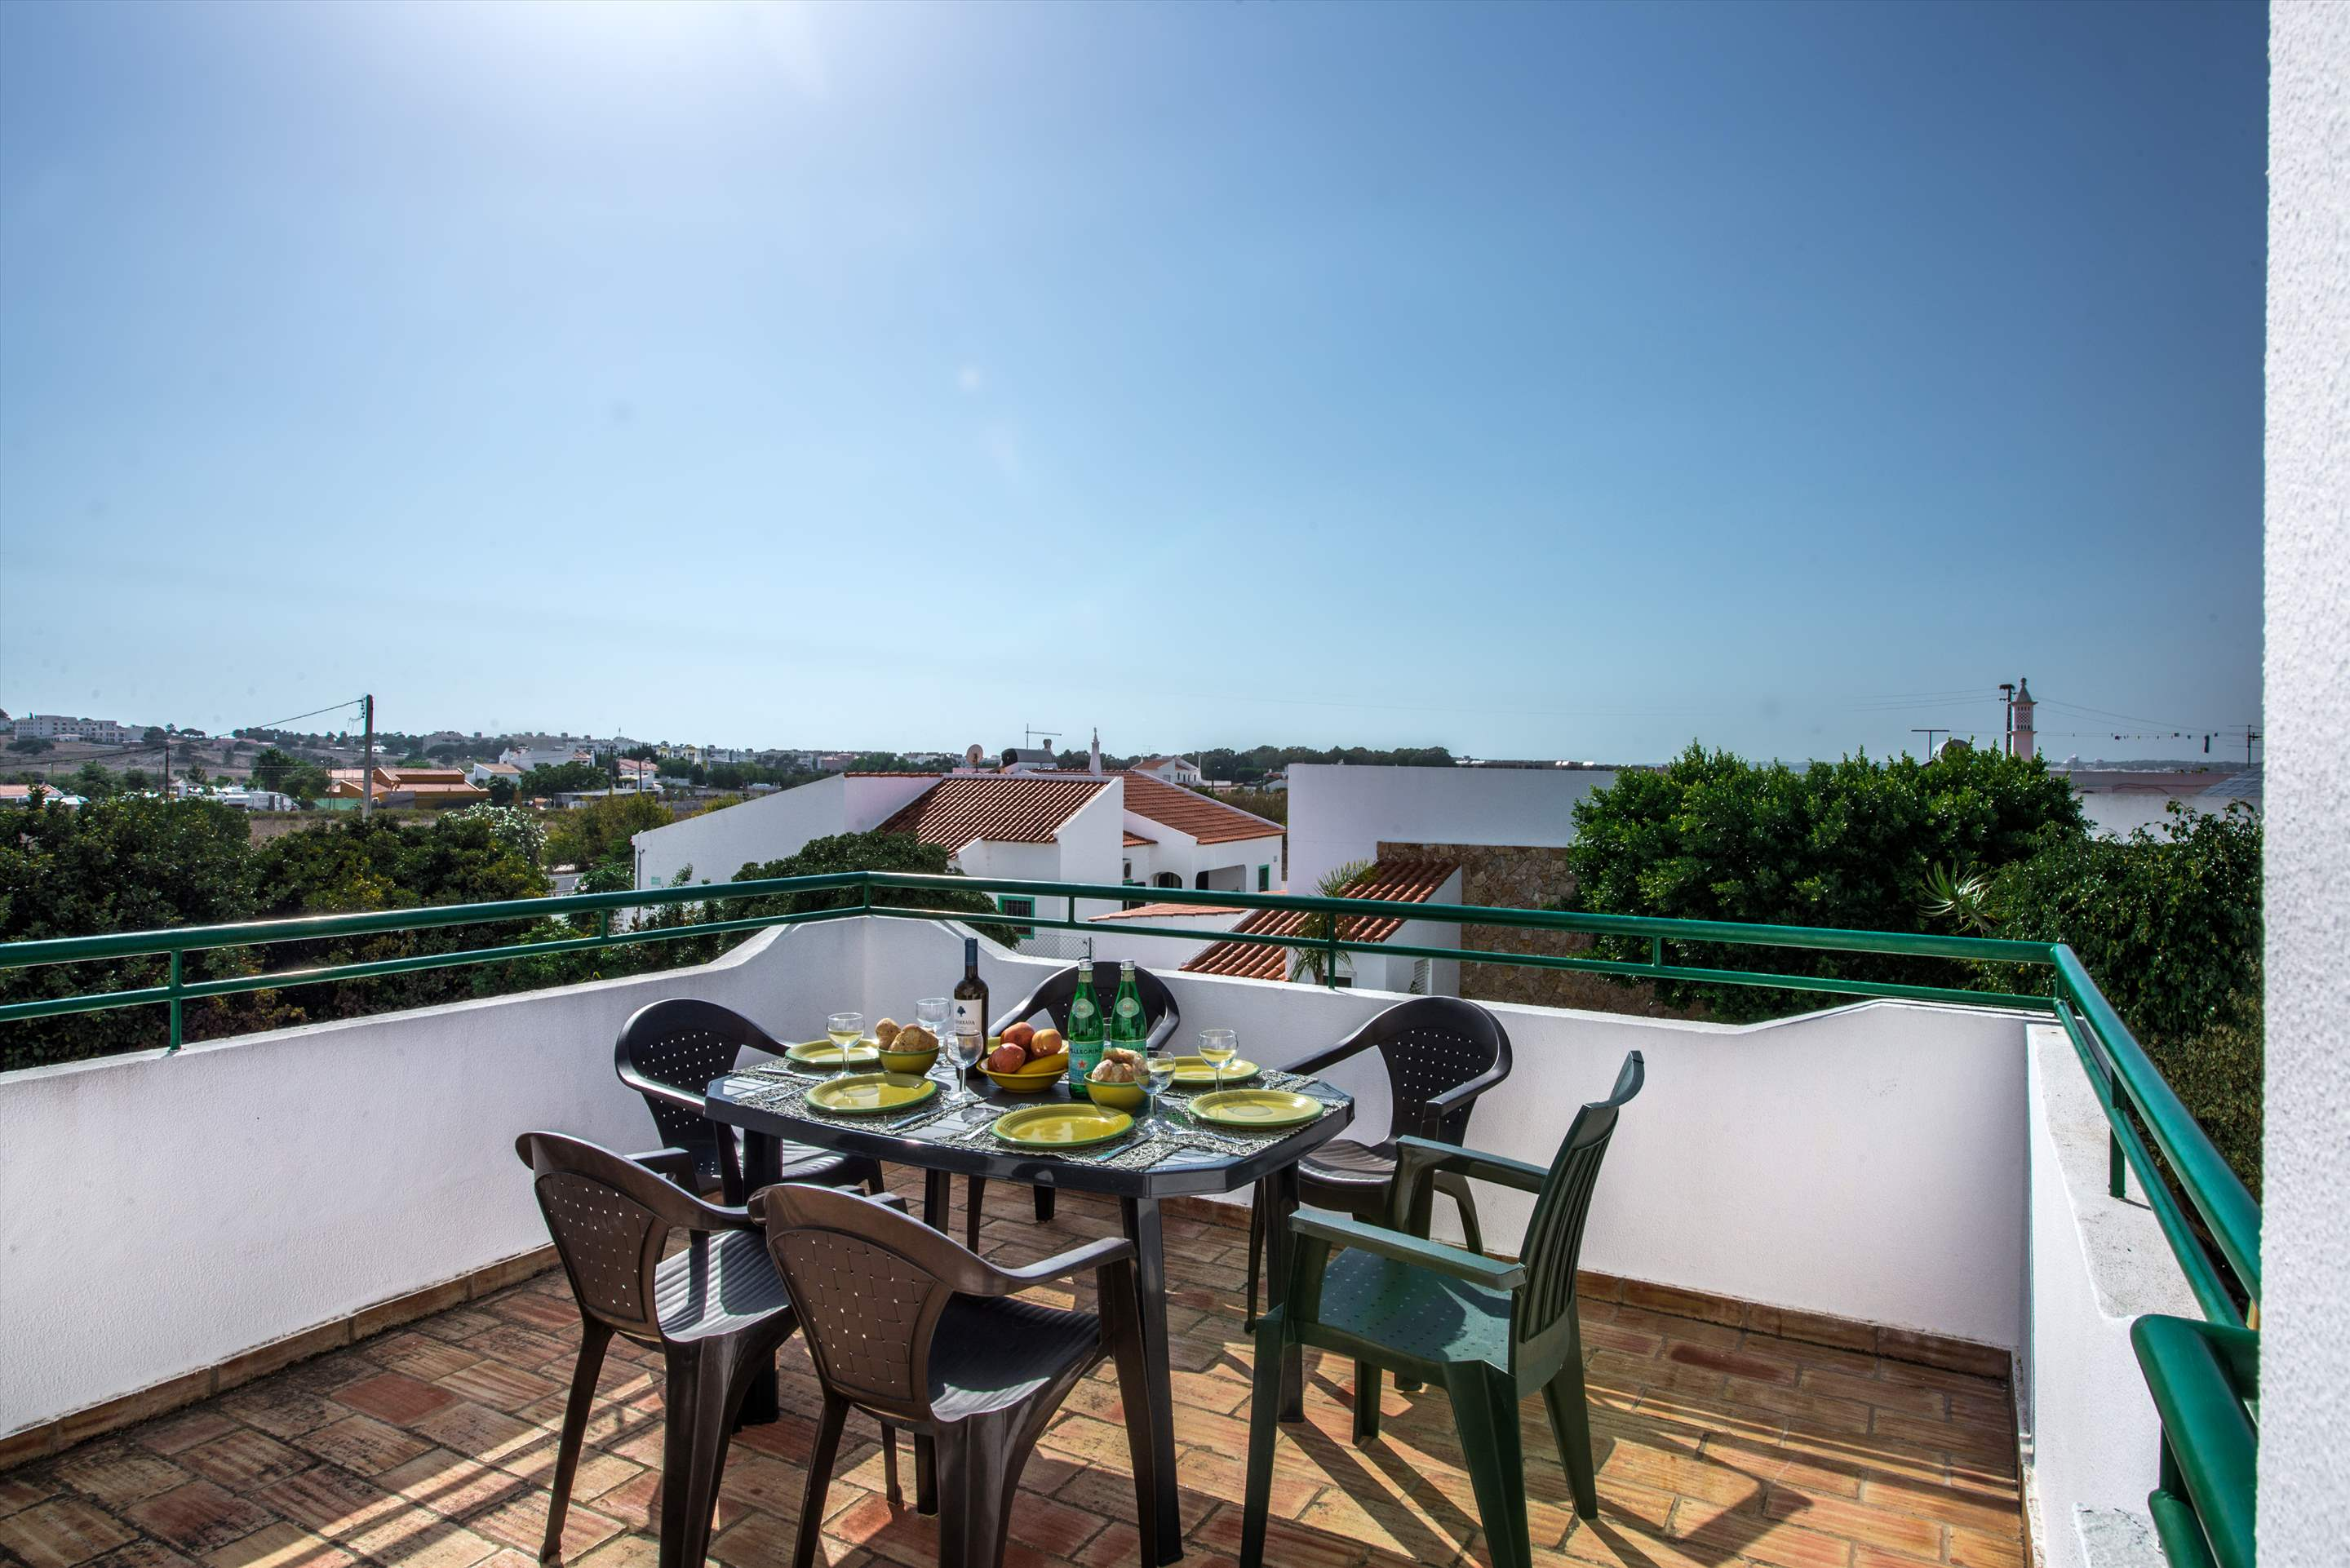 Casa Rebela, 10-11 persons rate, 6 bedroom villa in Gale, Vale da Parra and Guia, Algarve Photo #13